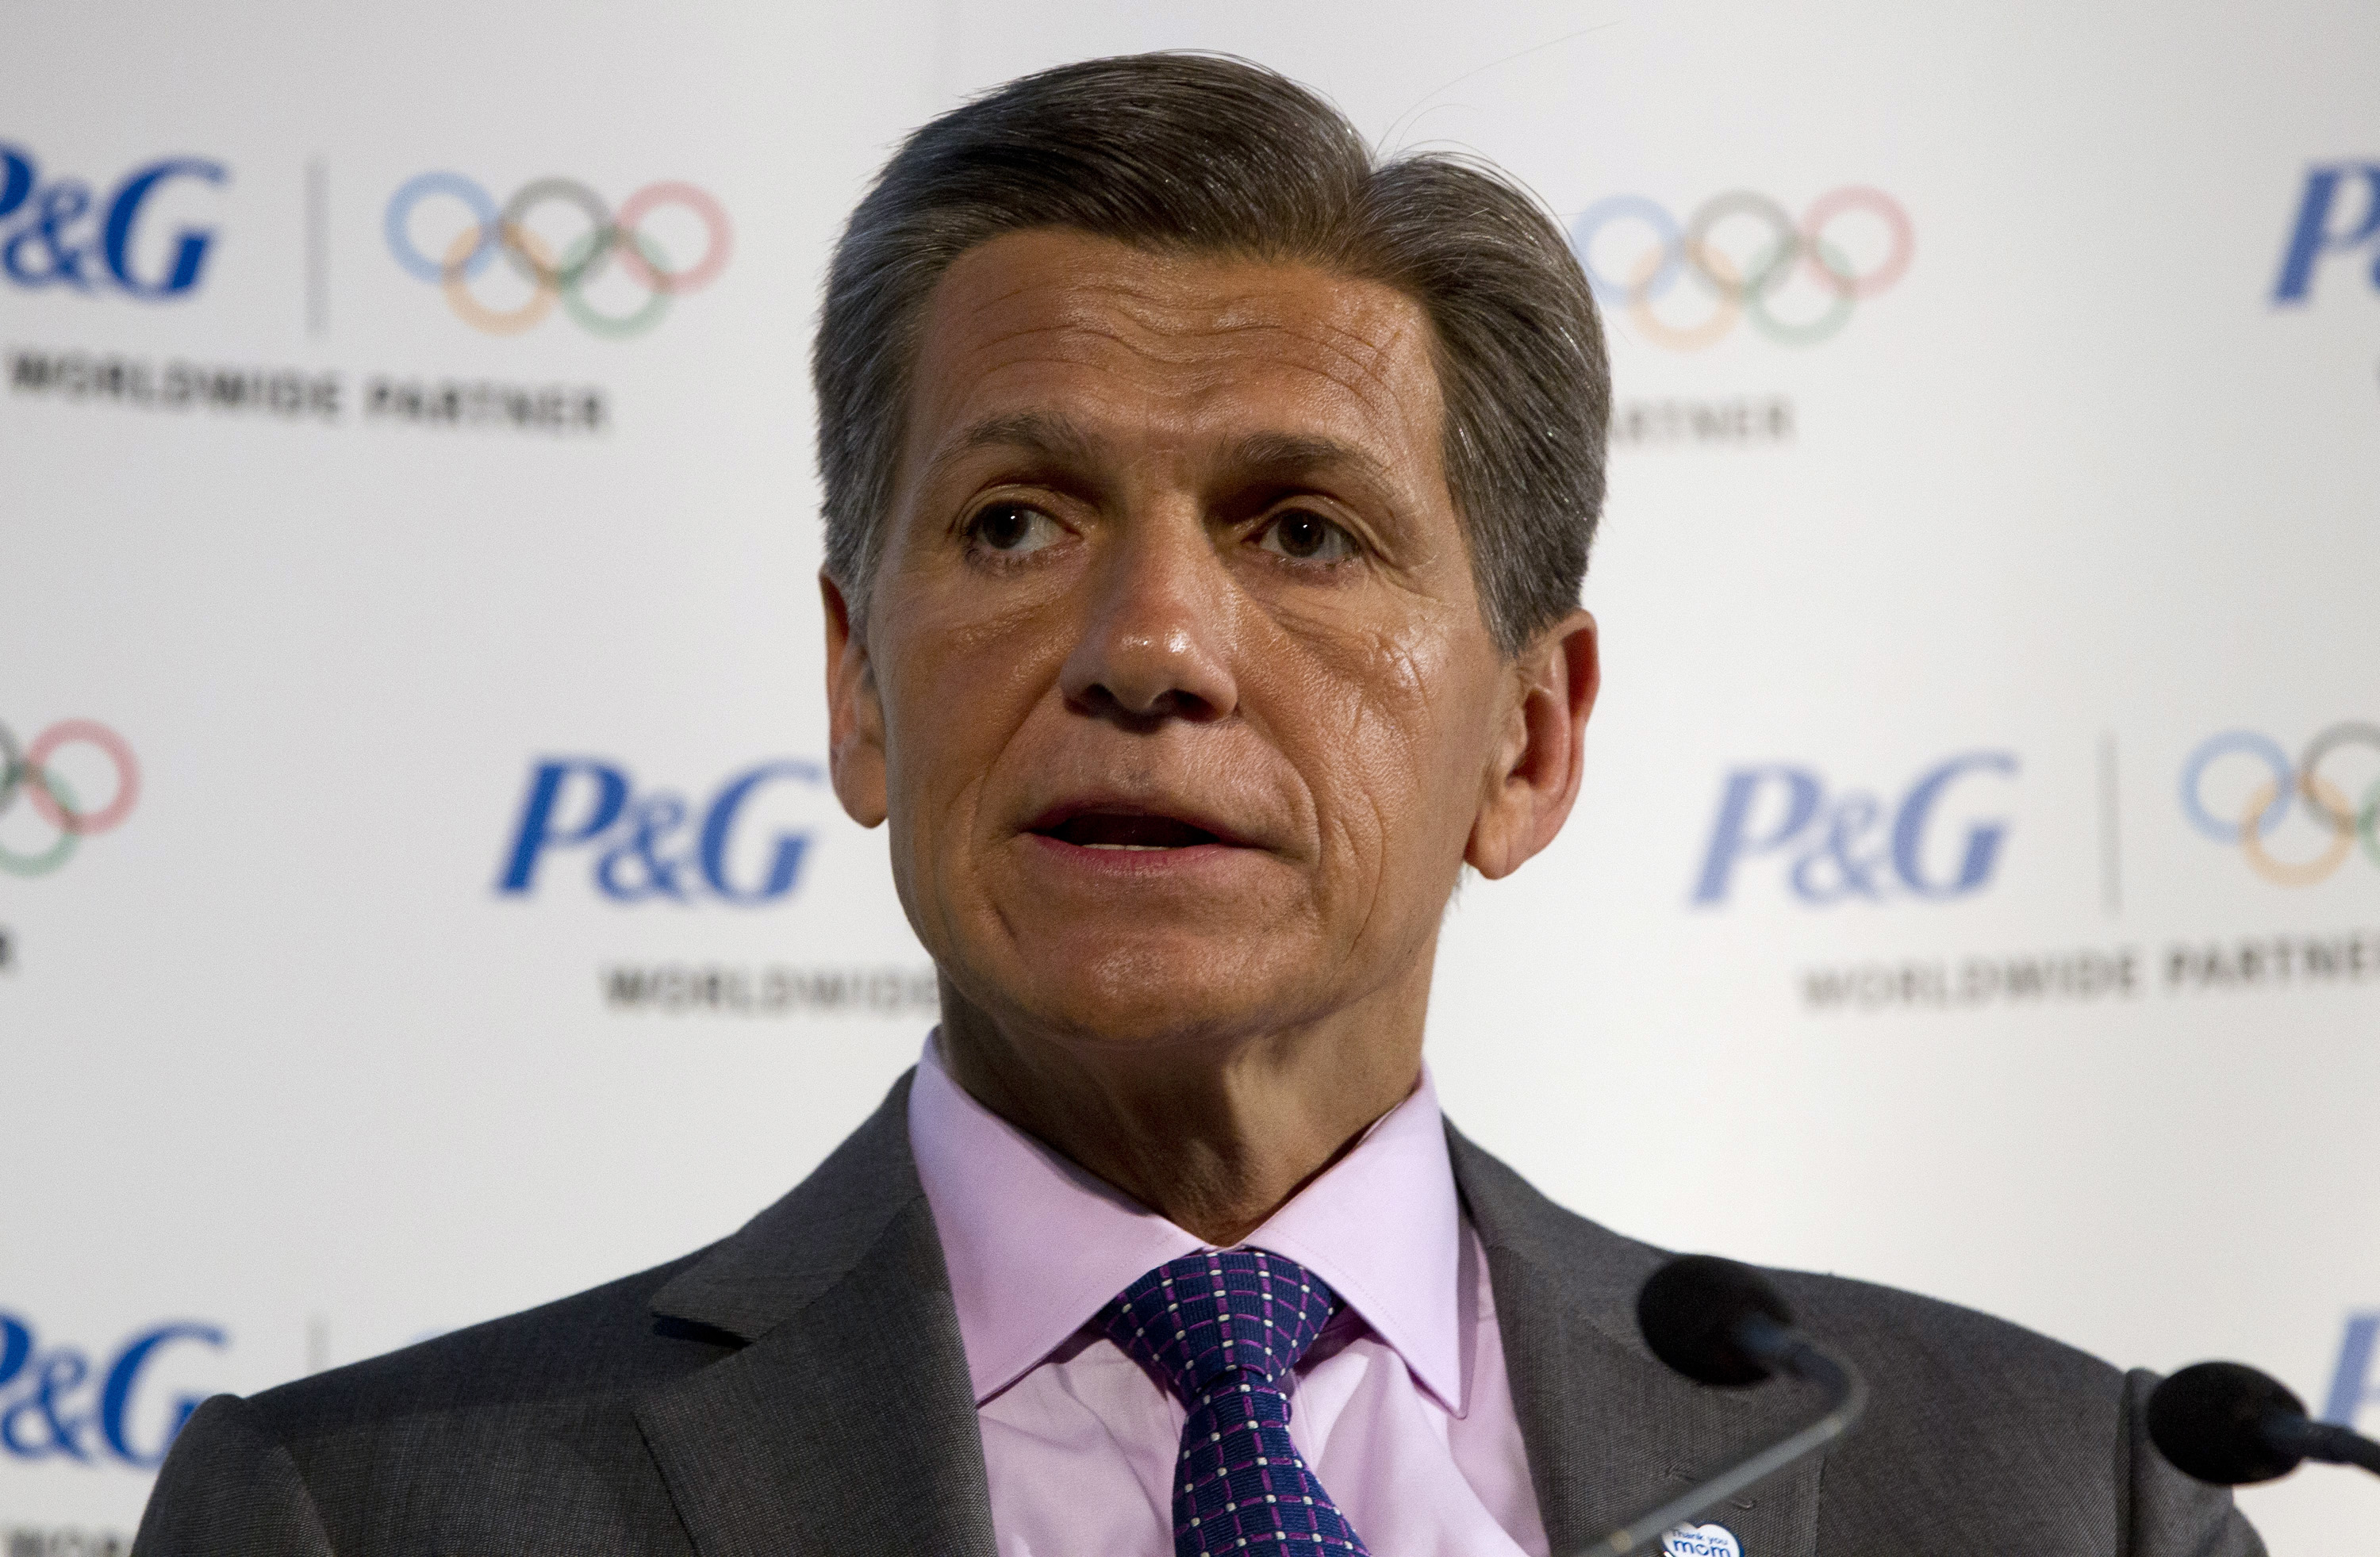 procter-gamble-makes-the-biggest-ask-civility